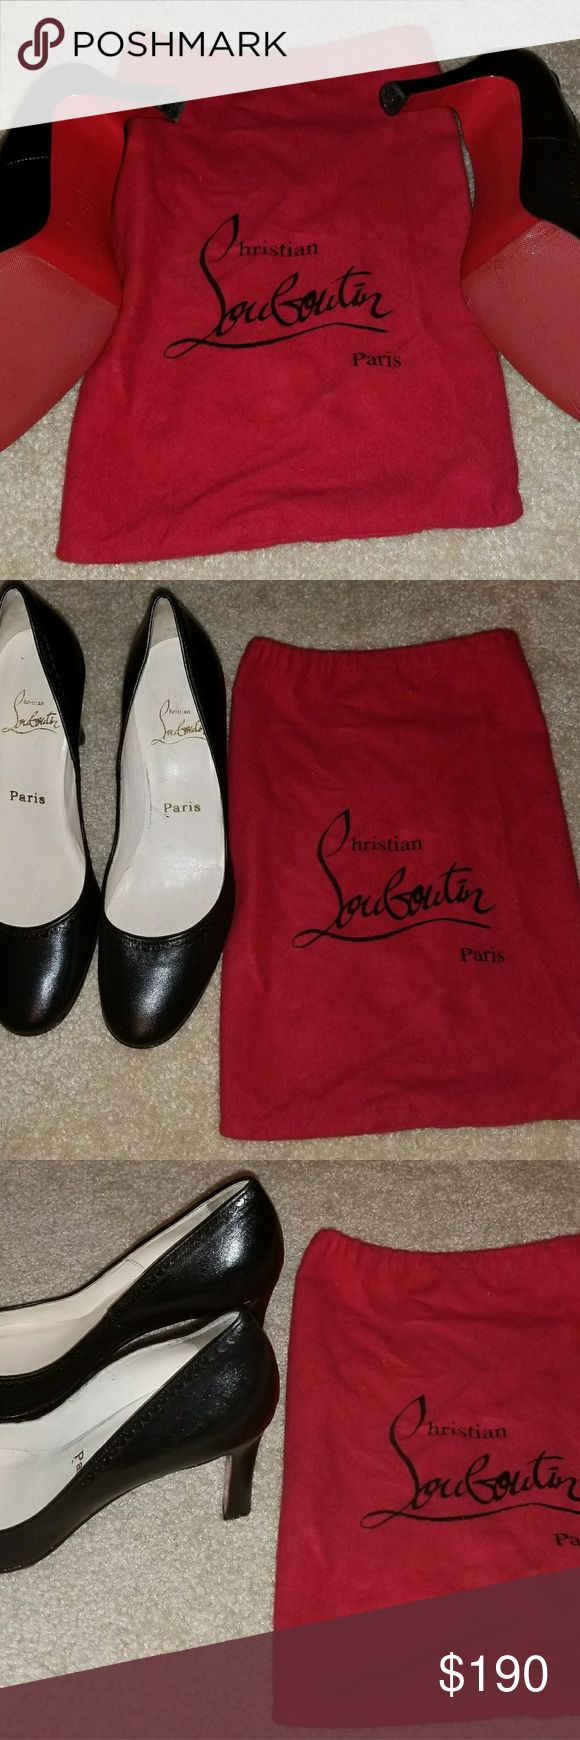 Louboutin Ladies shoes It is a pair of used black leather pumps with black trim, with worn insoles and signs of wear. Heel is 3inches with a 9 5/8 inch insole. EU 38 fits like US 7.5. Christian Louboutin Shoes Heels